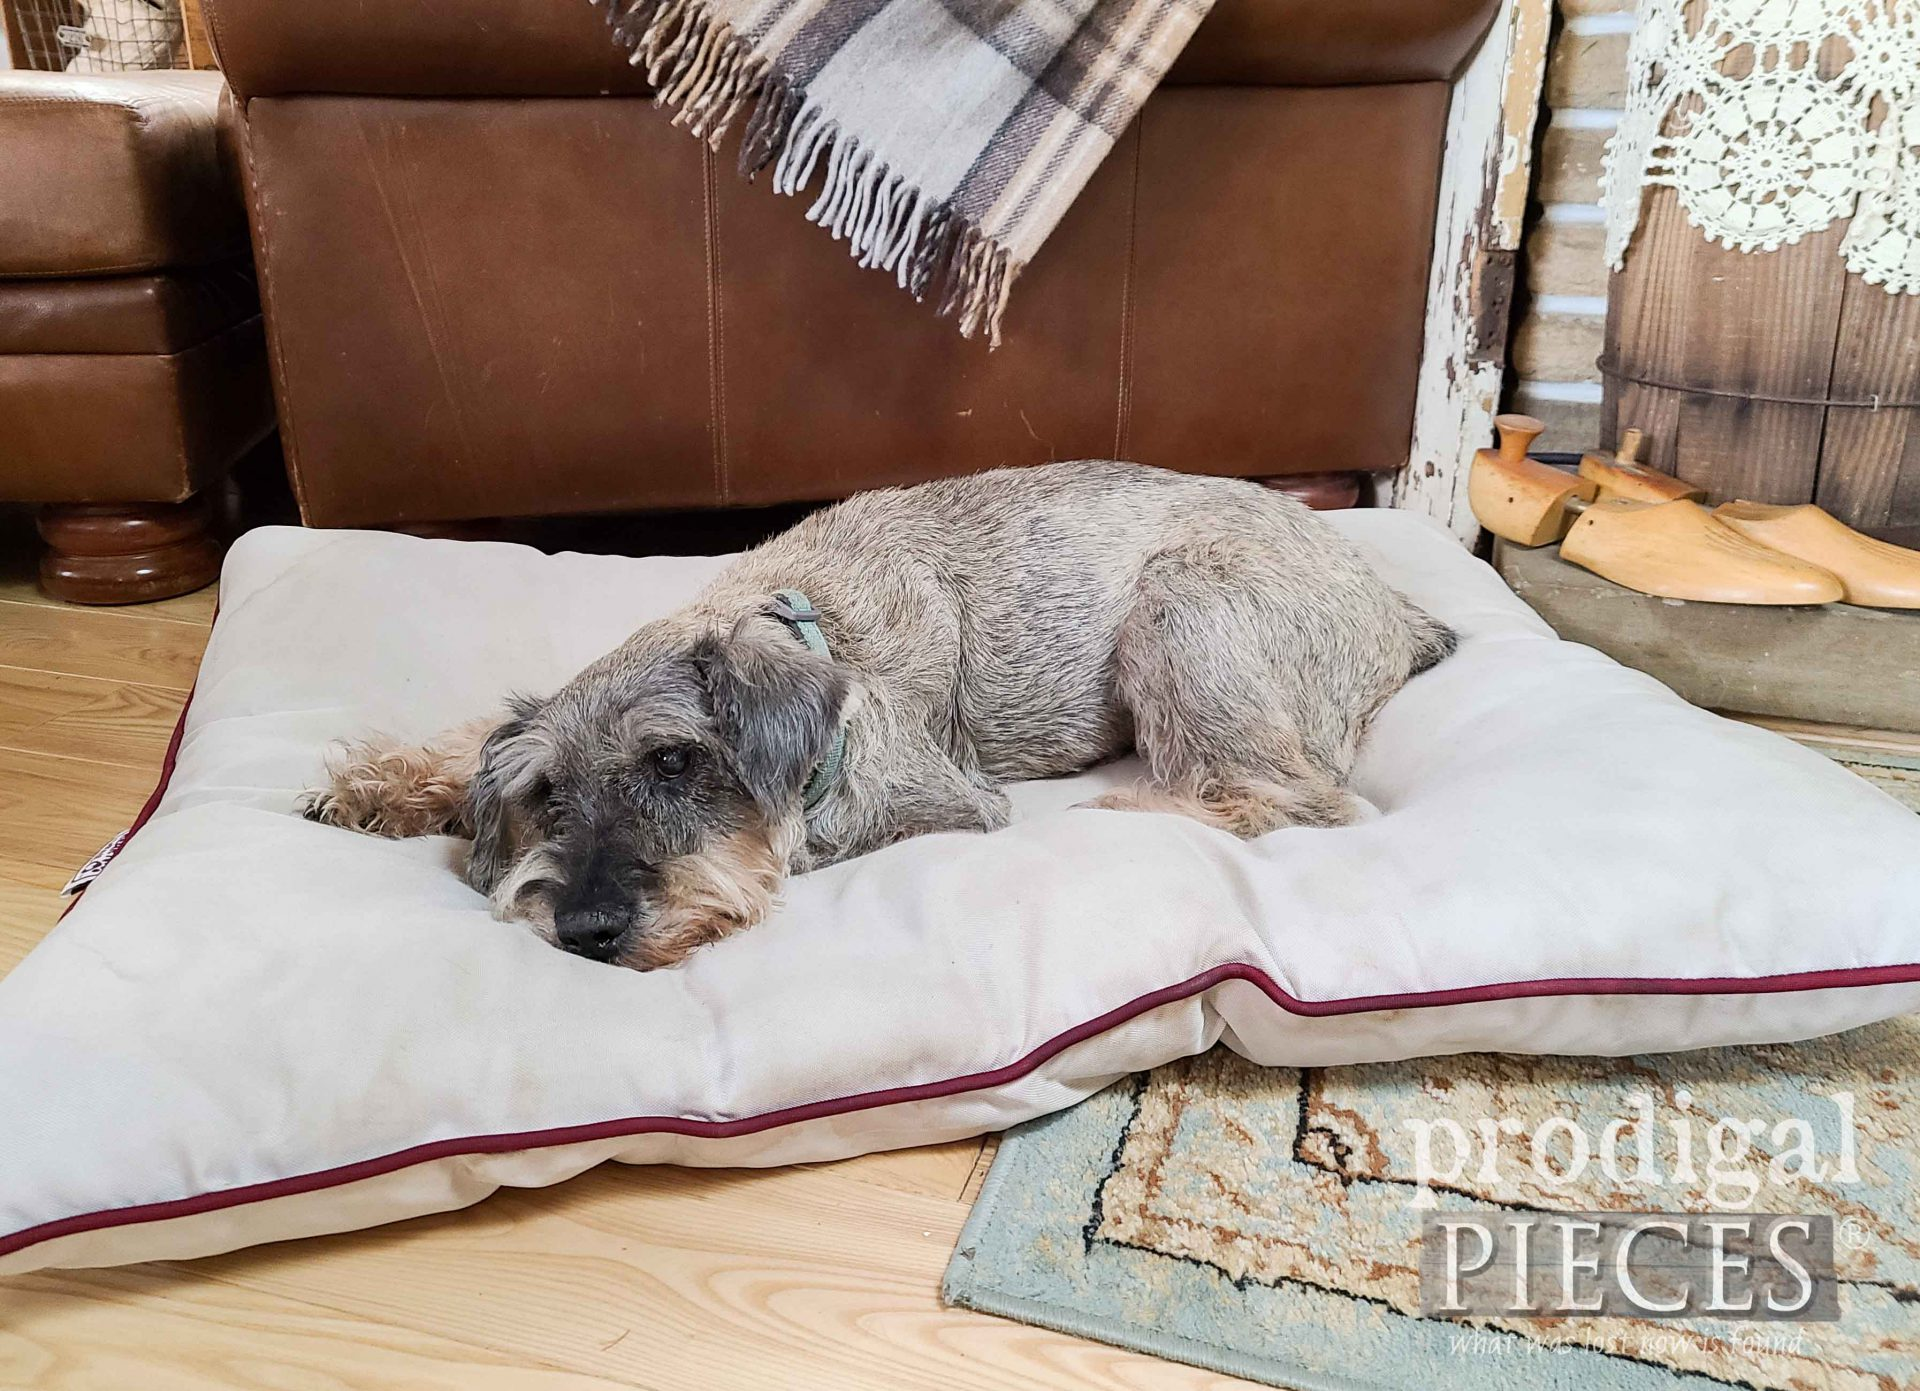 Sleeping Dog on Pet Bed by Larissa of Prodigal Pieces | prodigalpieces.com #prodigalpieces #dog